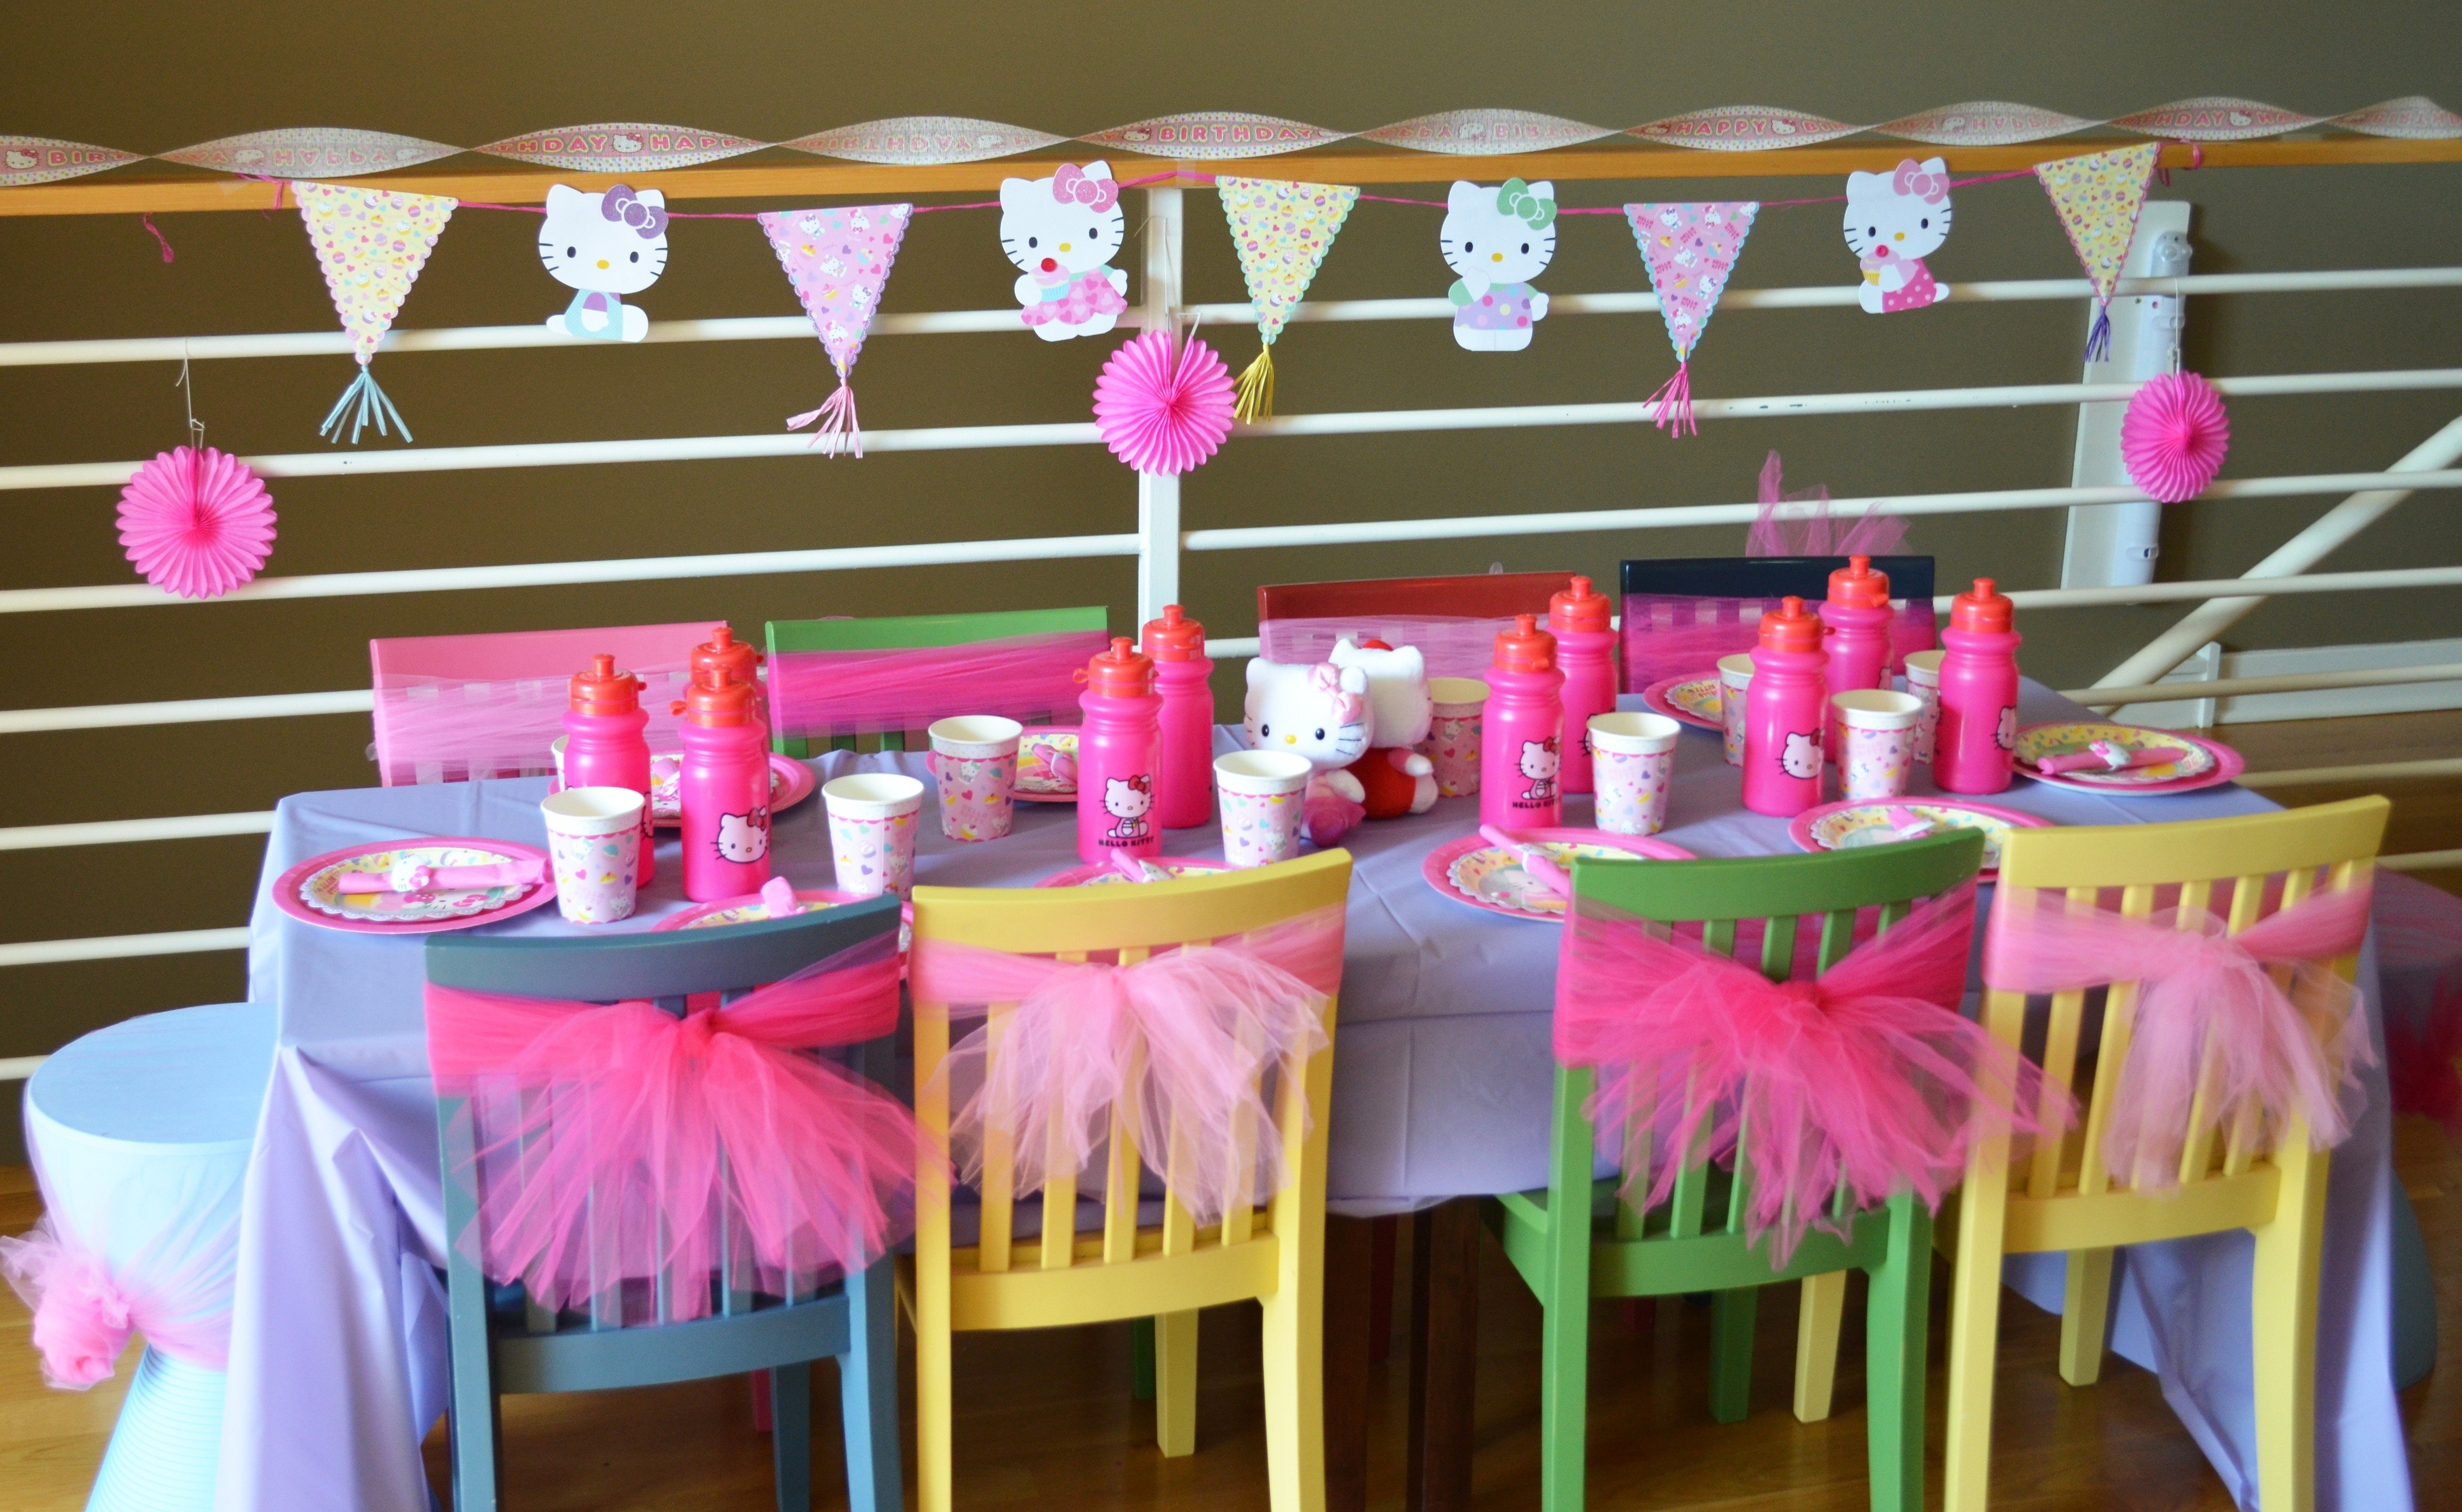 27 cute models regarding 3 year old birthday party that you shouldn